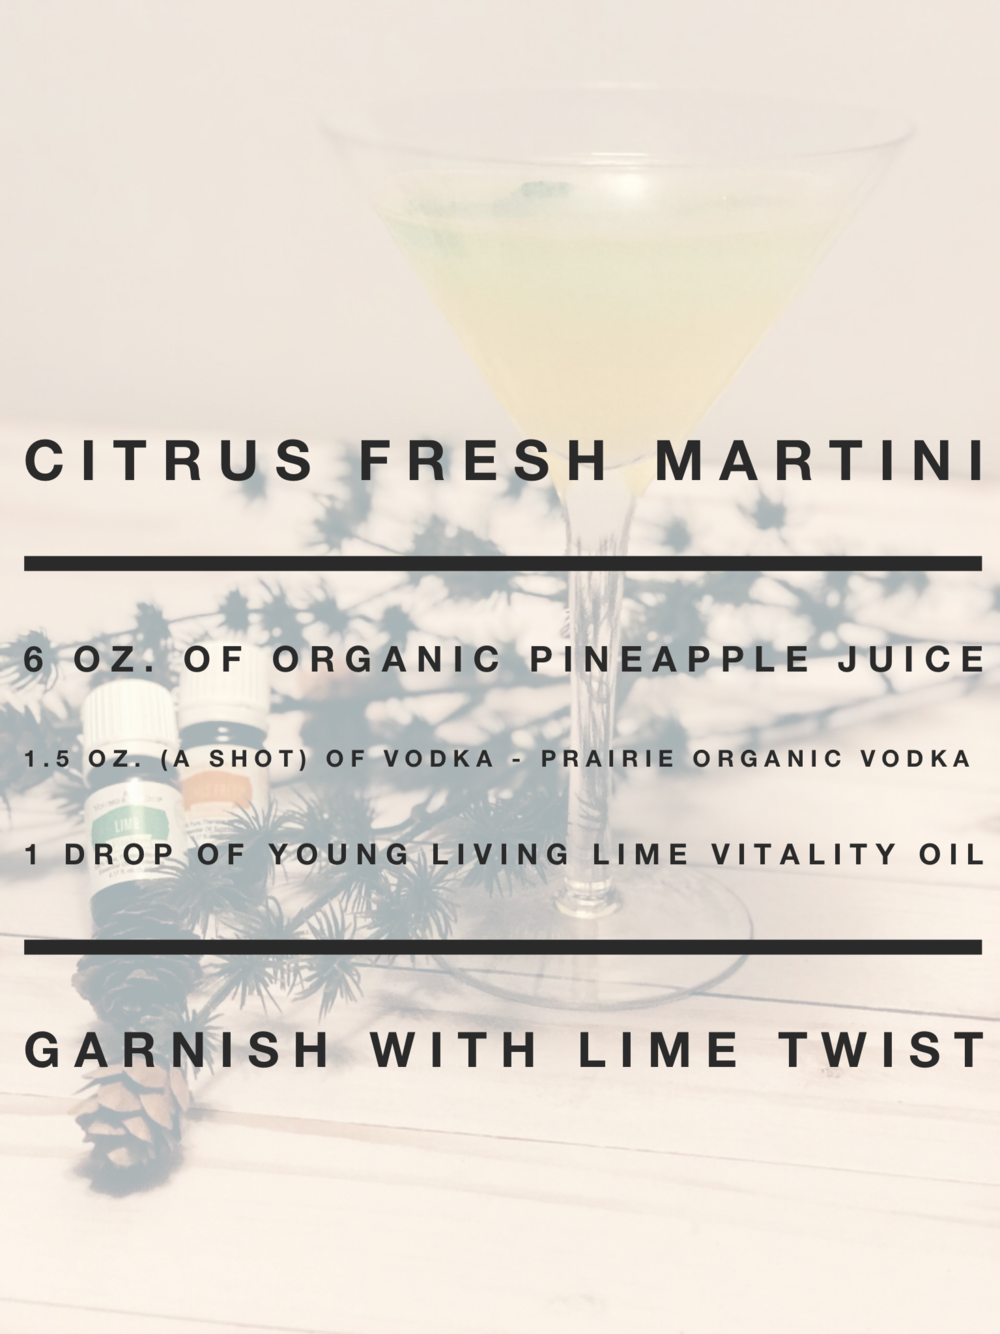 Citrus Fresh Martini - Combine ingredients in a cocktail shaker, shake, then pour into two martini glasses. Garnish with a fresh lime twist and enjoy with company.